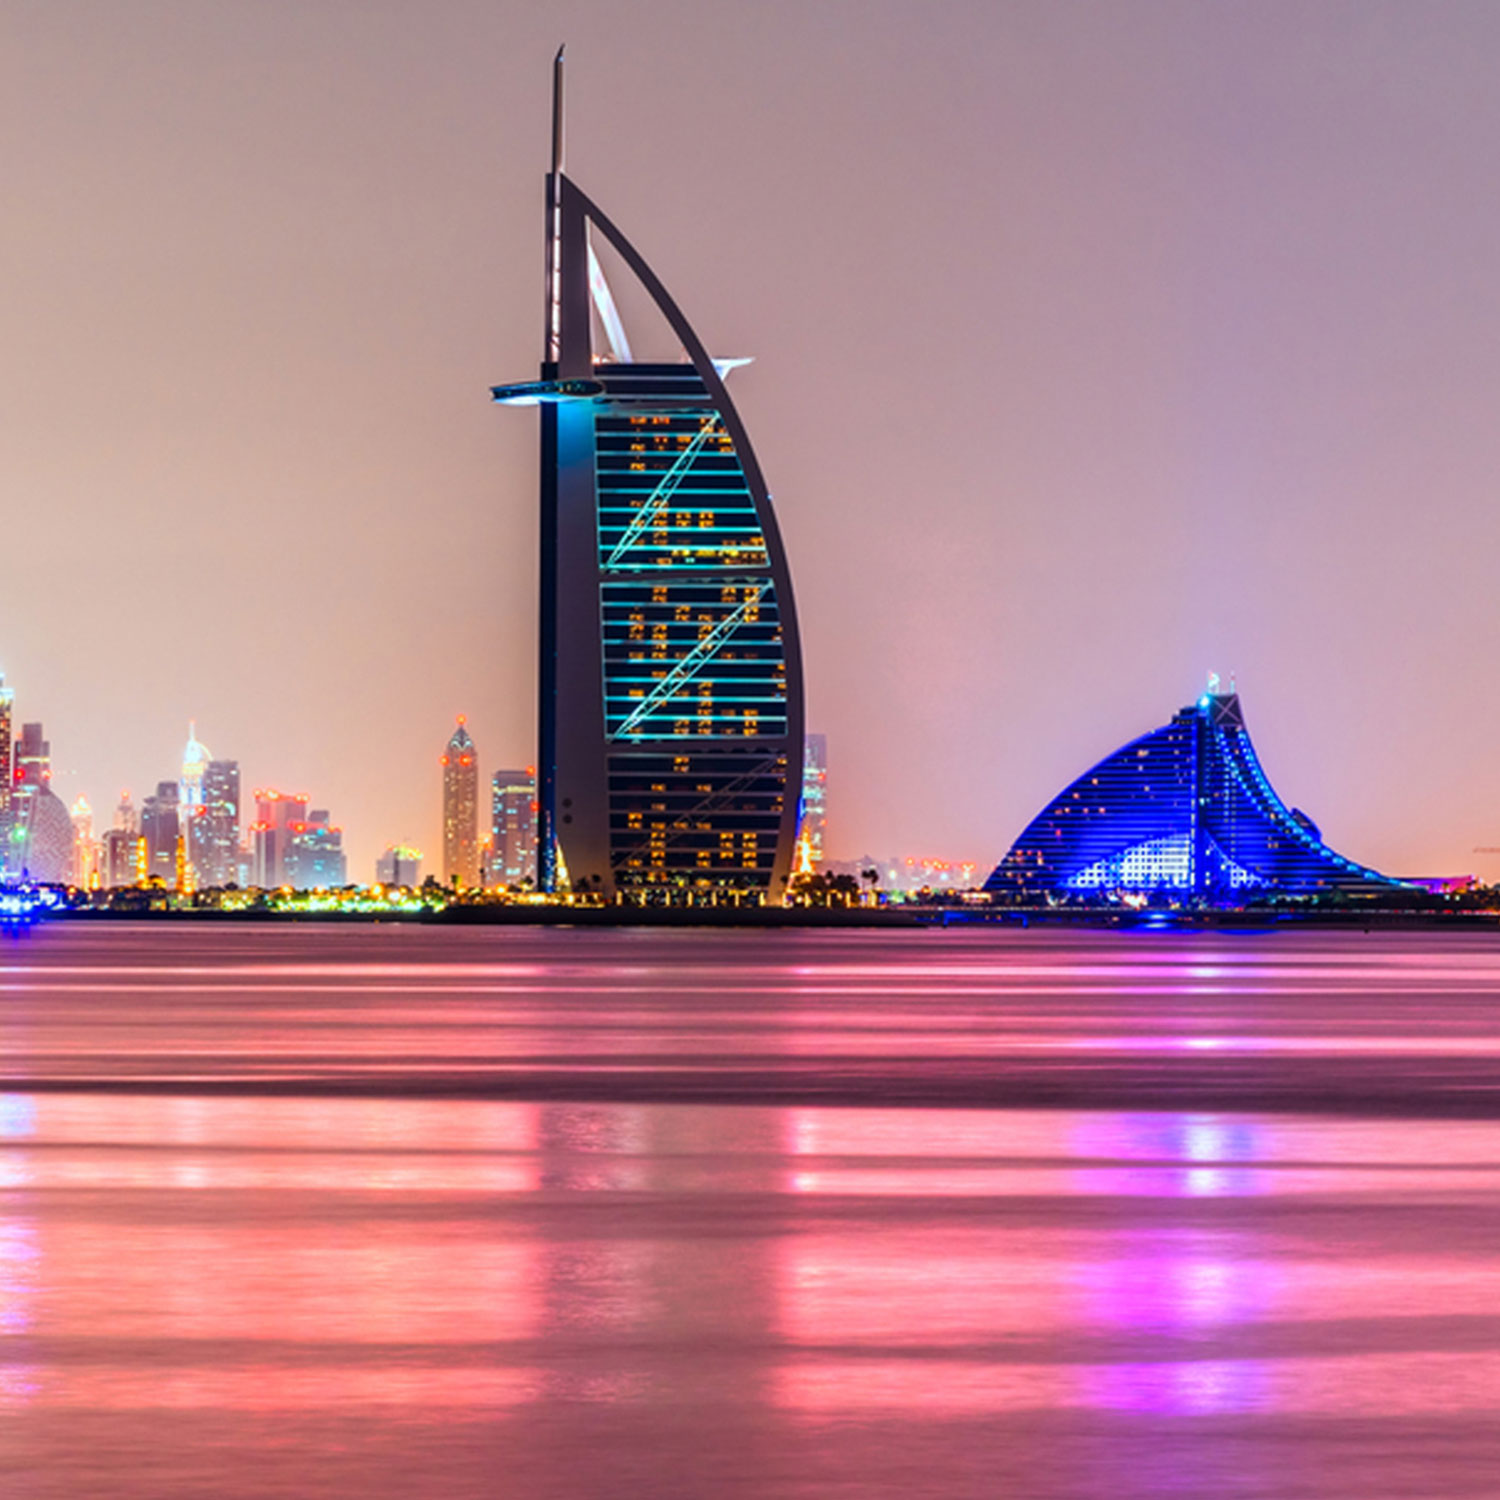 10 Things You Didn't Know About Dubai